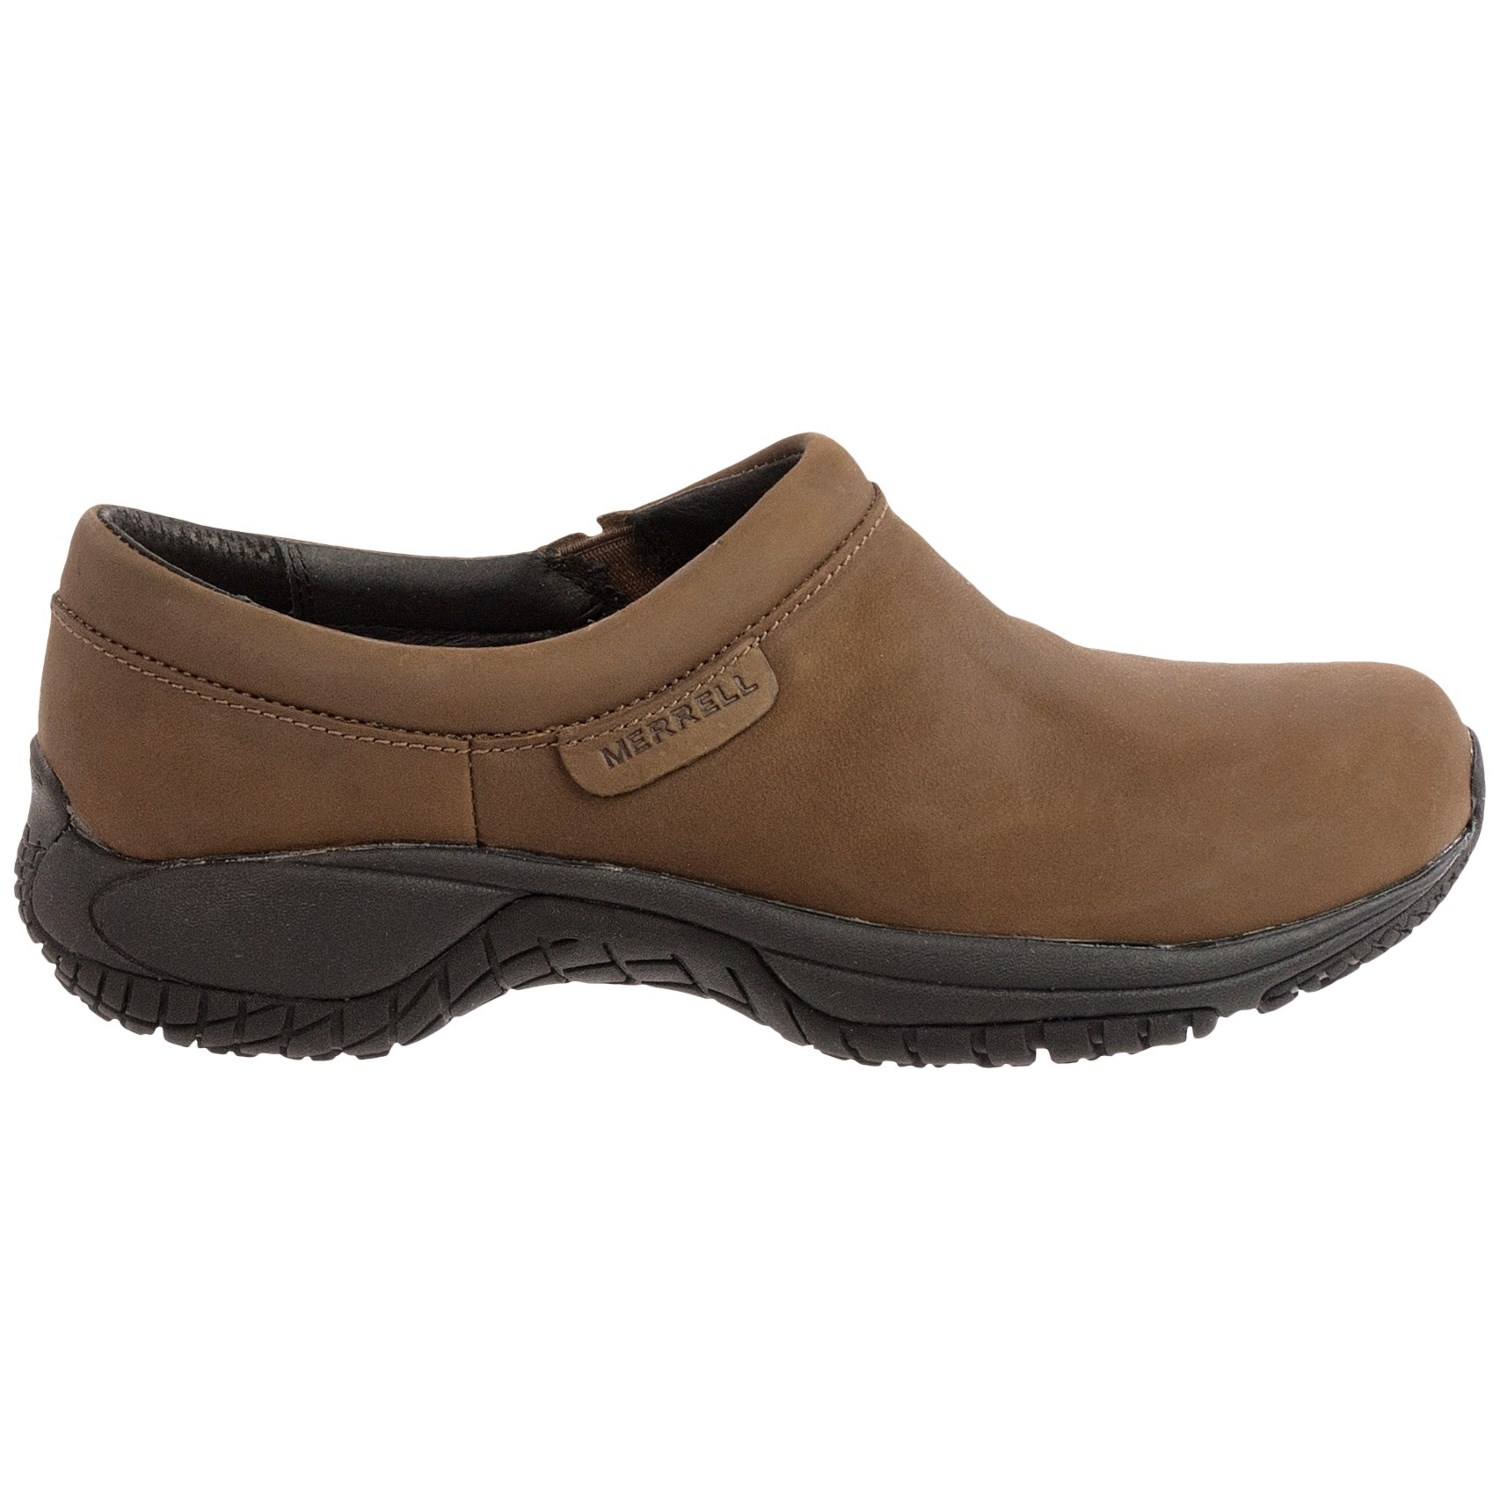 Mens Wide Comfortable Work Shoes